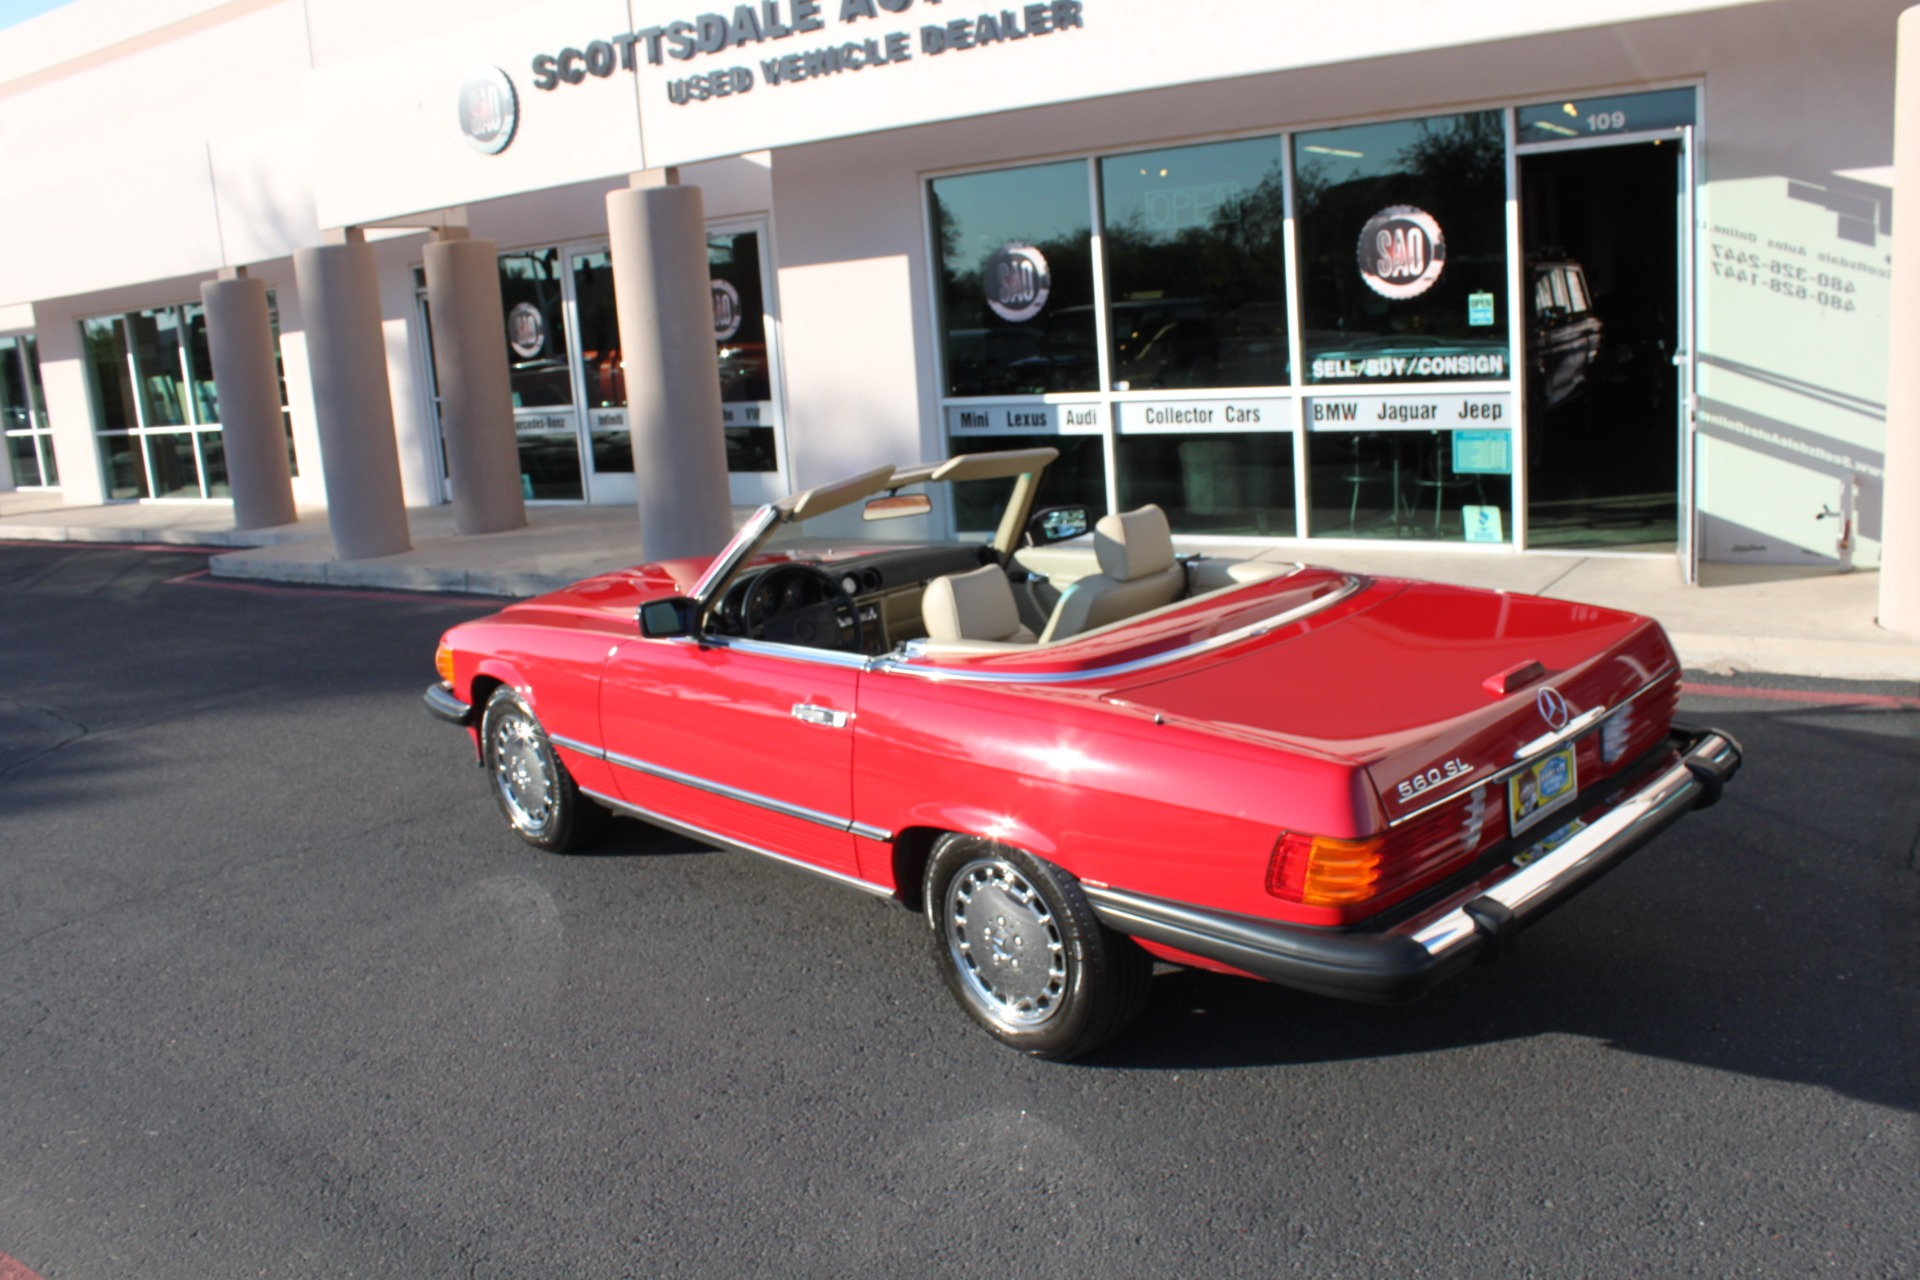 Used-1989-Mercedes-Benz-560-Series-560SL-Chevelle